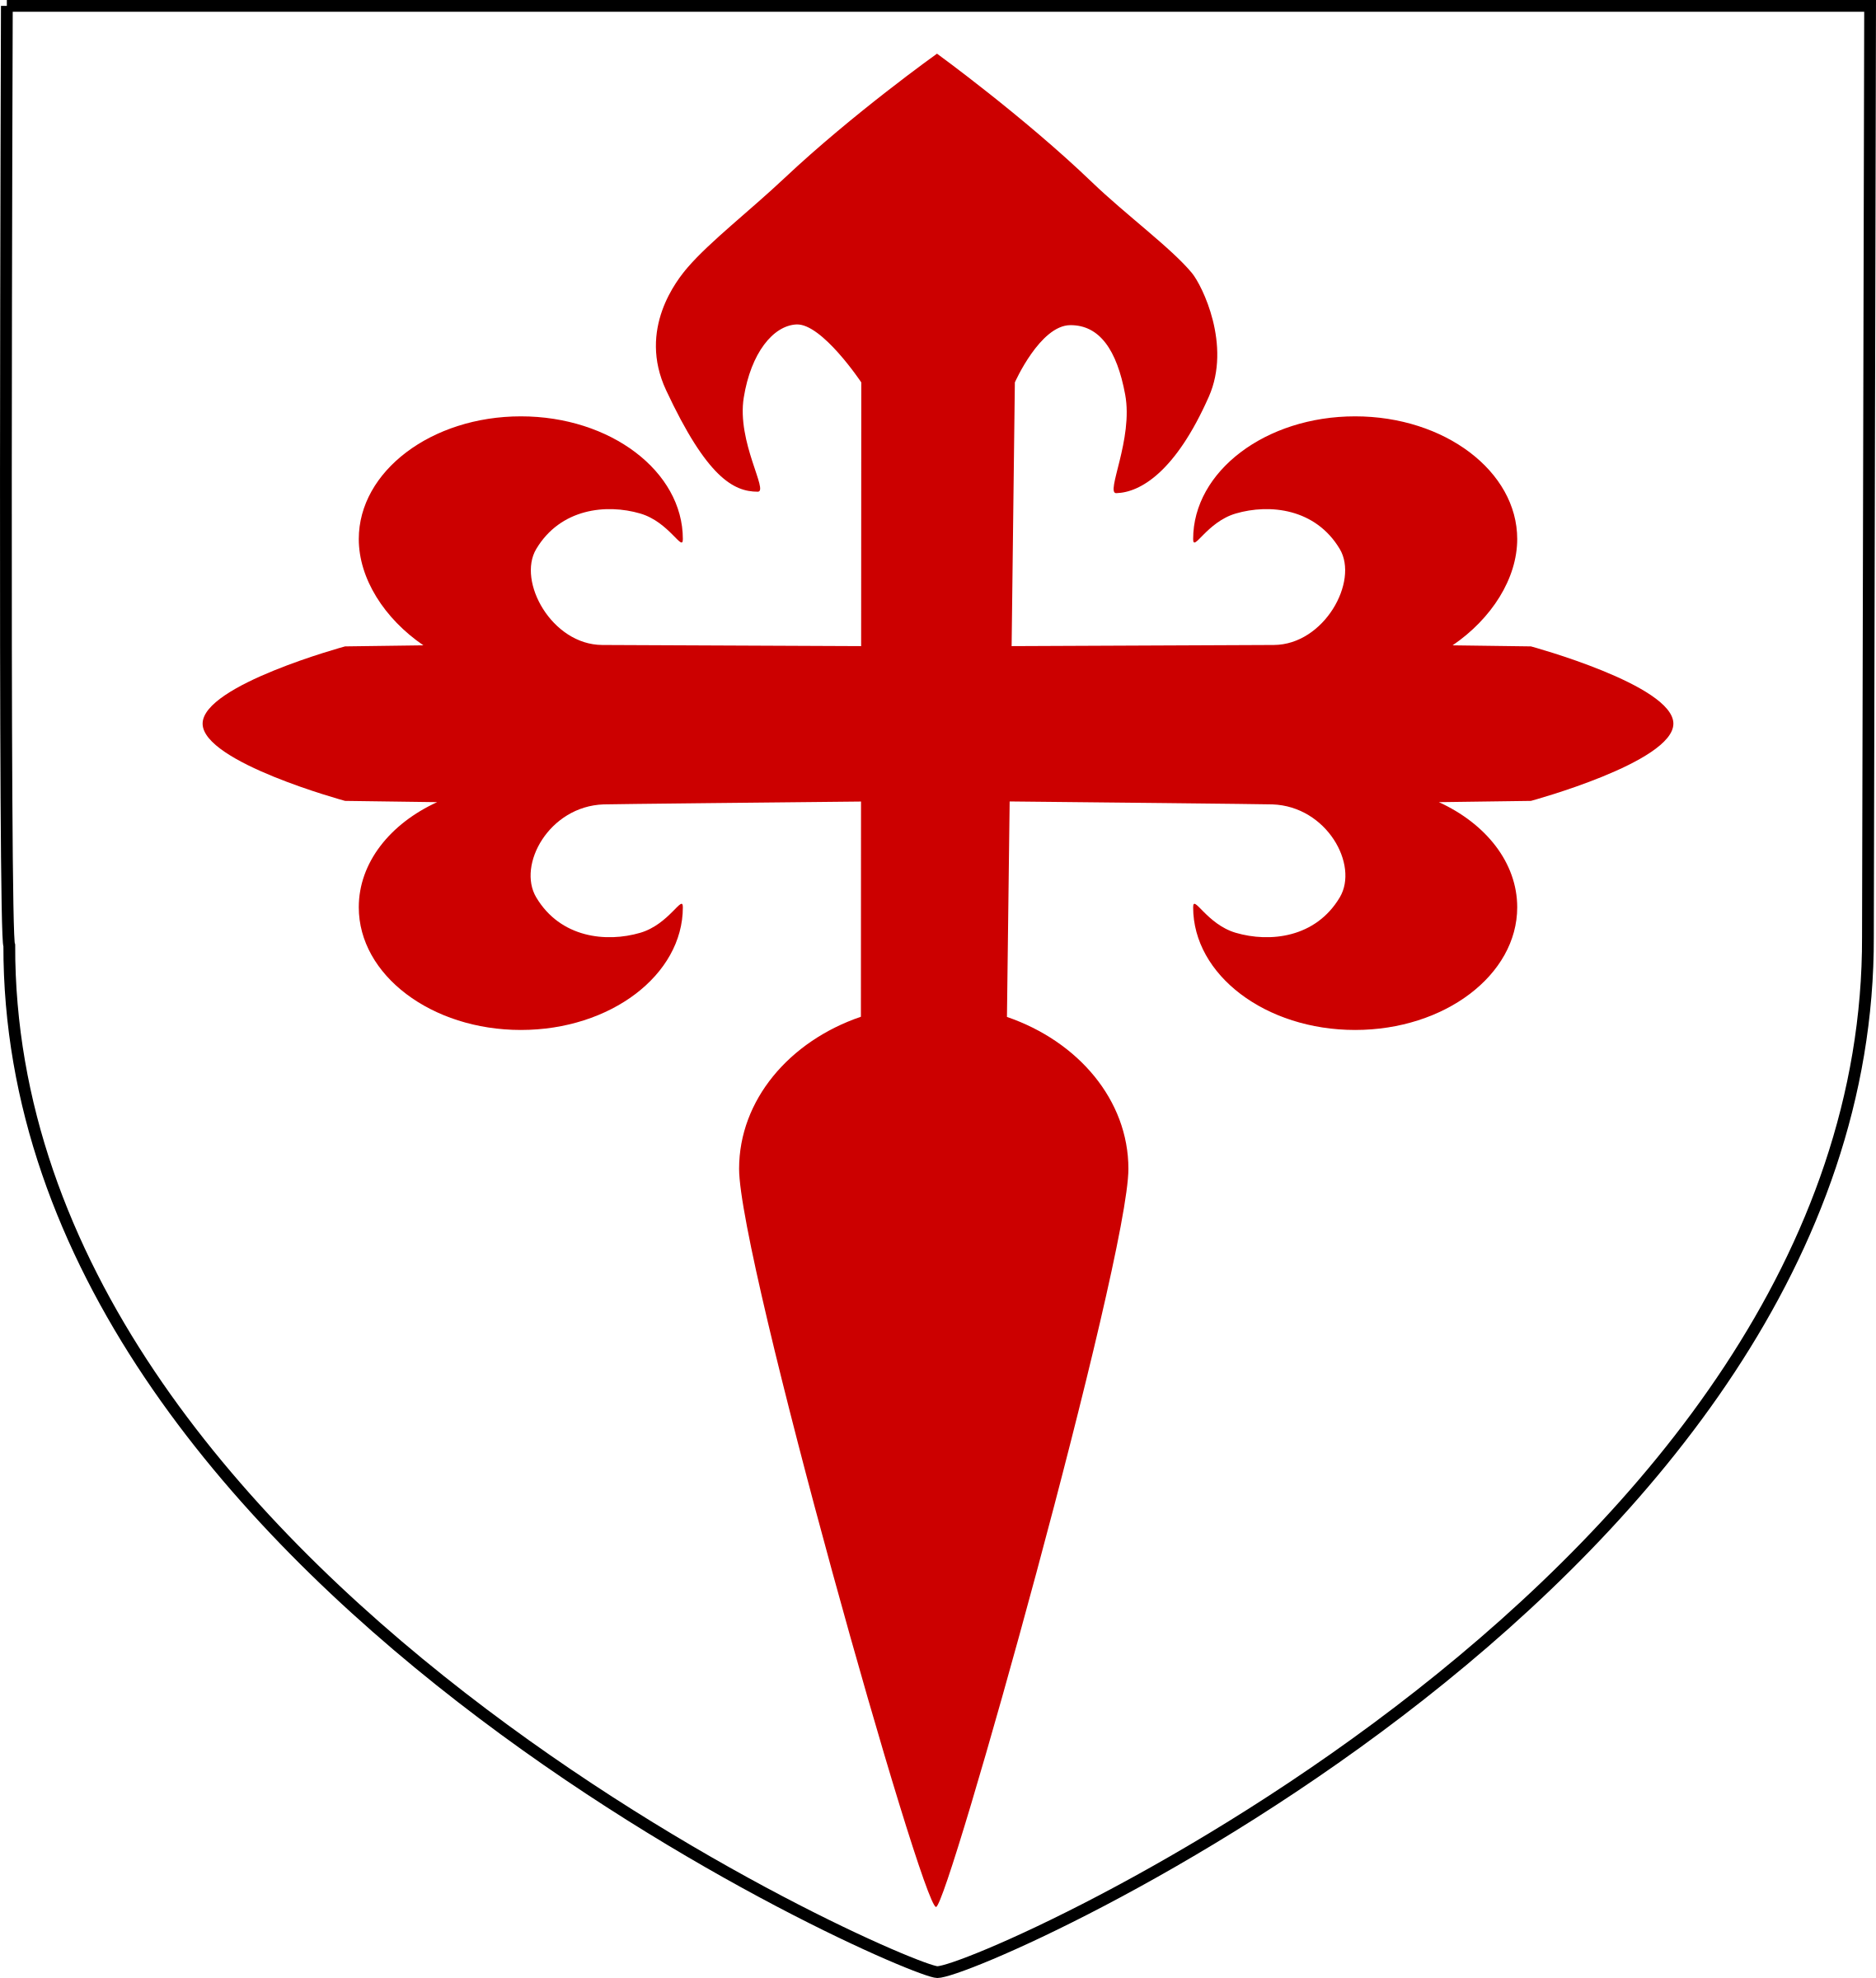 Blason St Jacques de l'épée by laurent